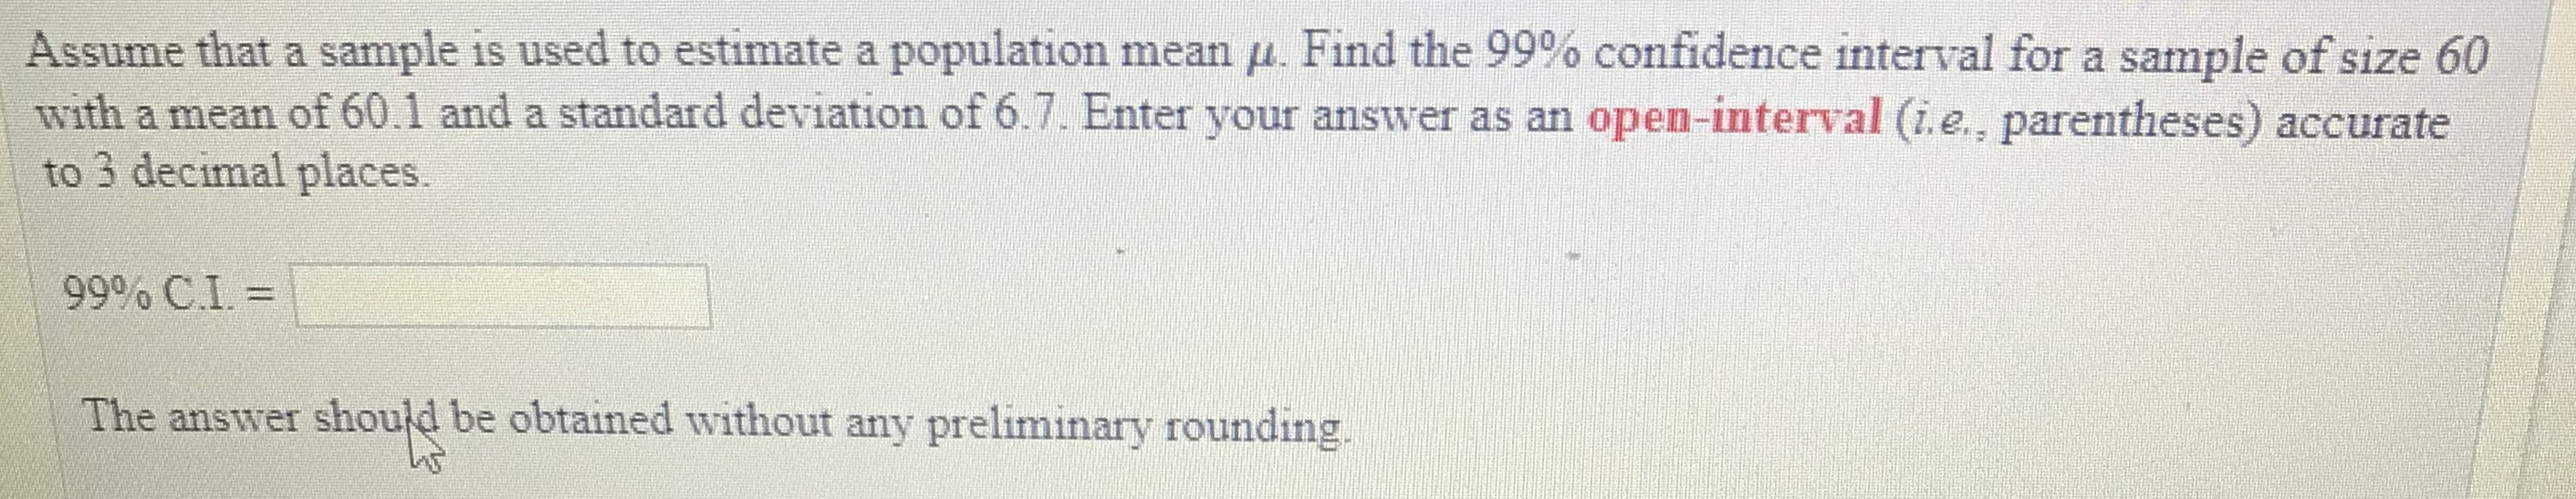 Assume that a sample is used to estimate a population mean μ Find the 99% confidence interval for a sample ofsıze 60 with a mean of 60.1 and a standard deviation of 6.7. Enter your answer as an open-interval (i.e., parentheses) accurate to 3 decimal places. 99% CI = he answer should be obtained without any preliminary rounding,